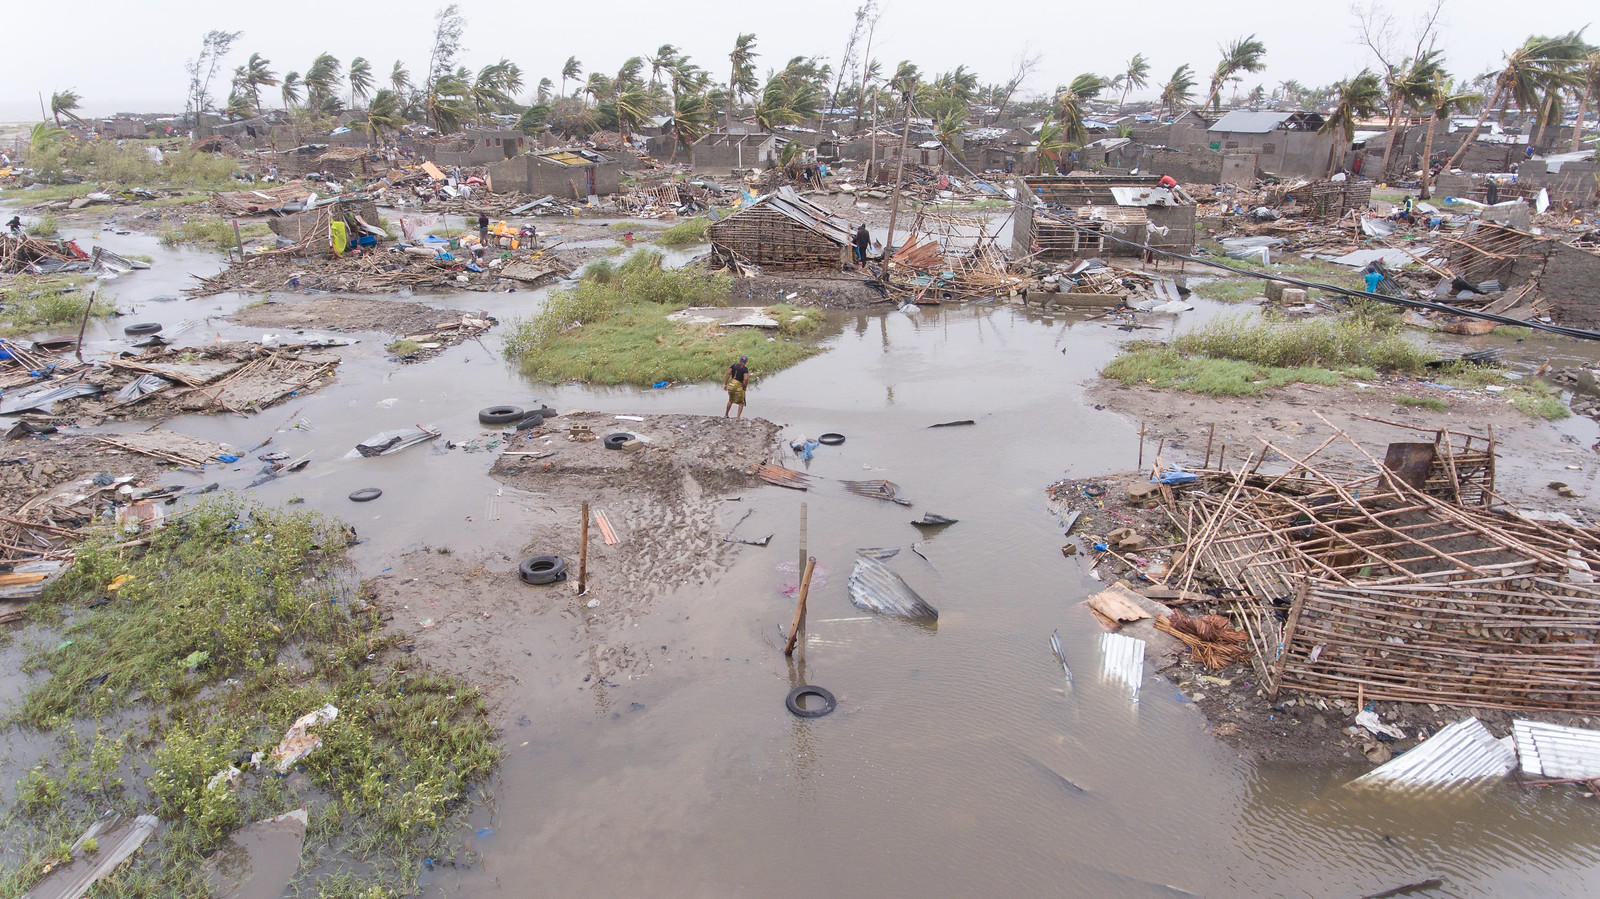 photo of aftermath of Cyclone Idai in Mozambique